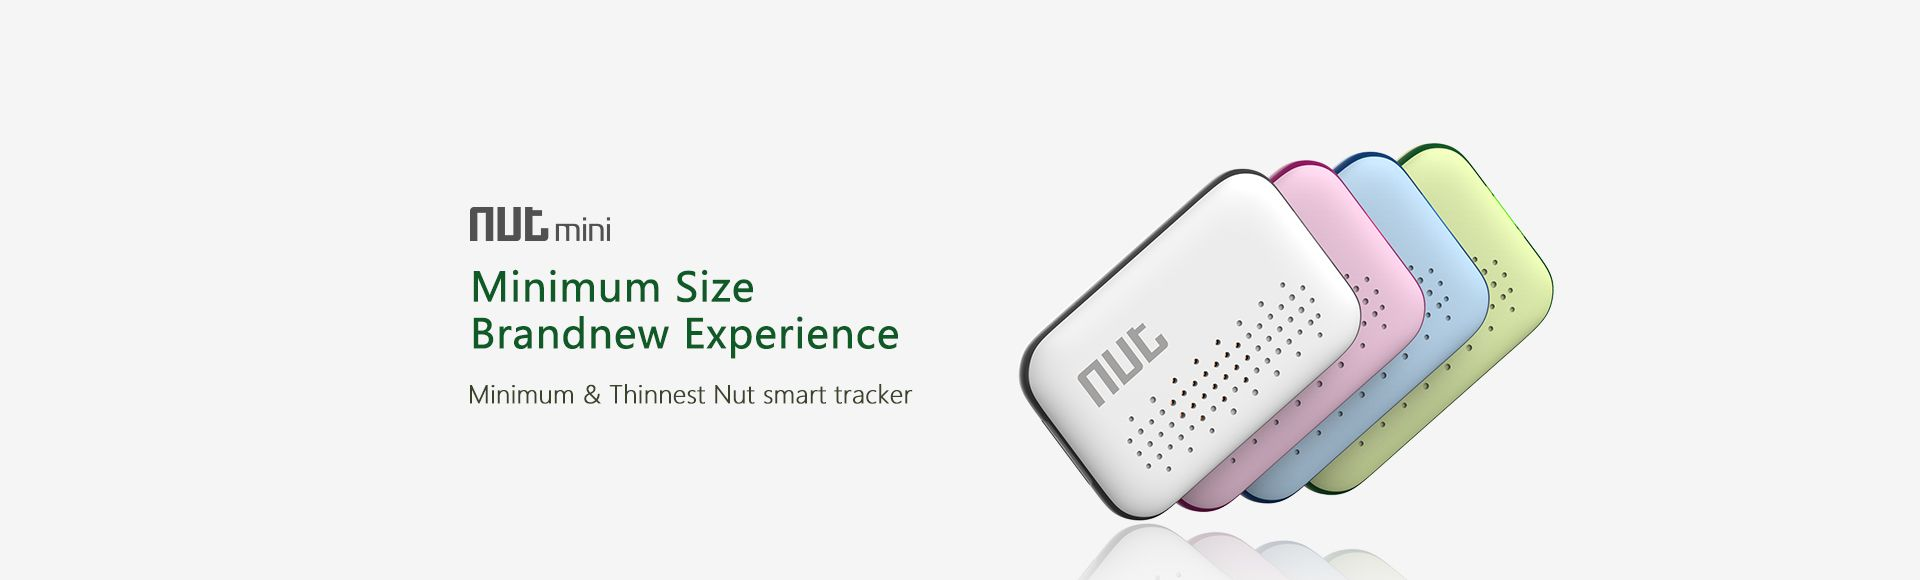 Nut mini Smart Tracker - Find wallet device Tracking device for wallet